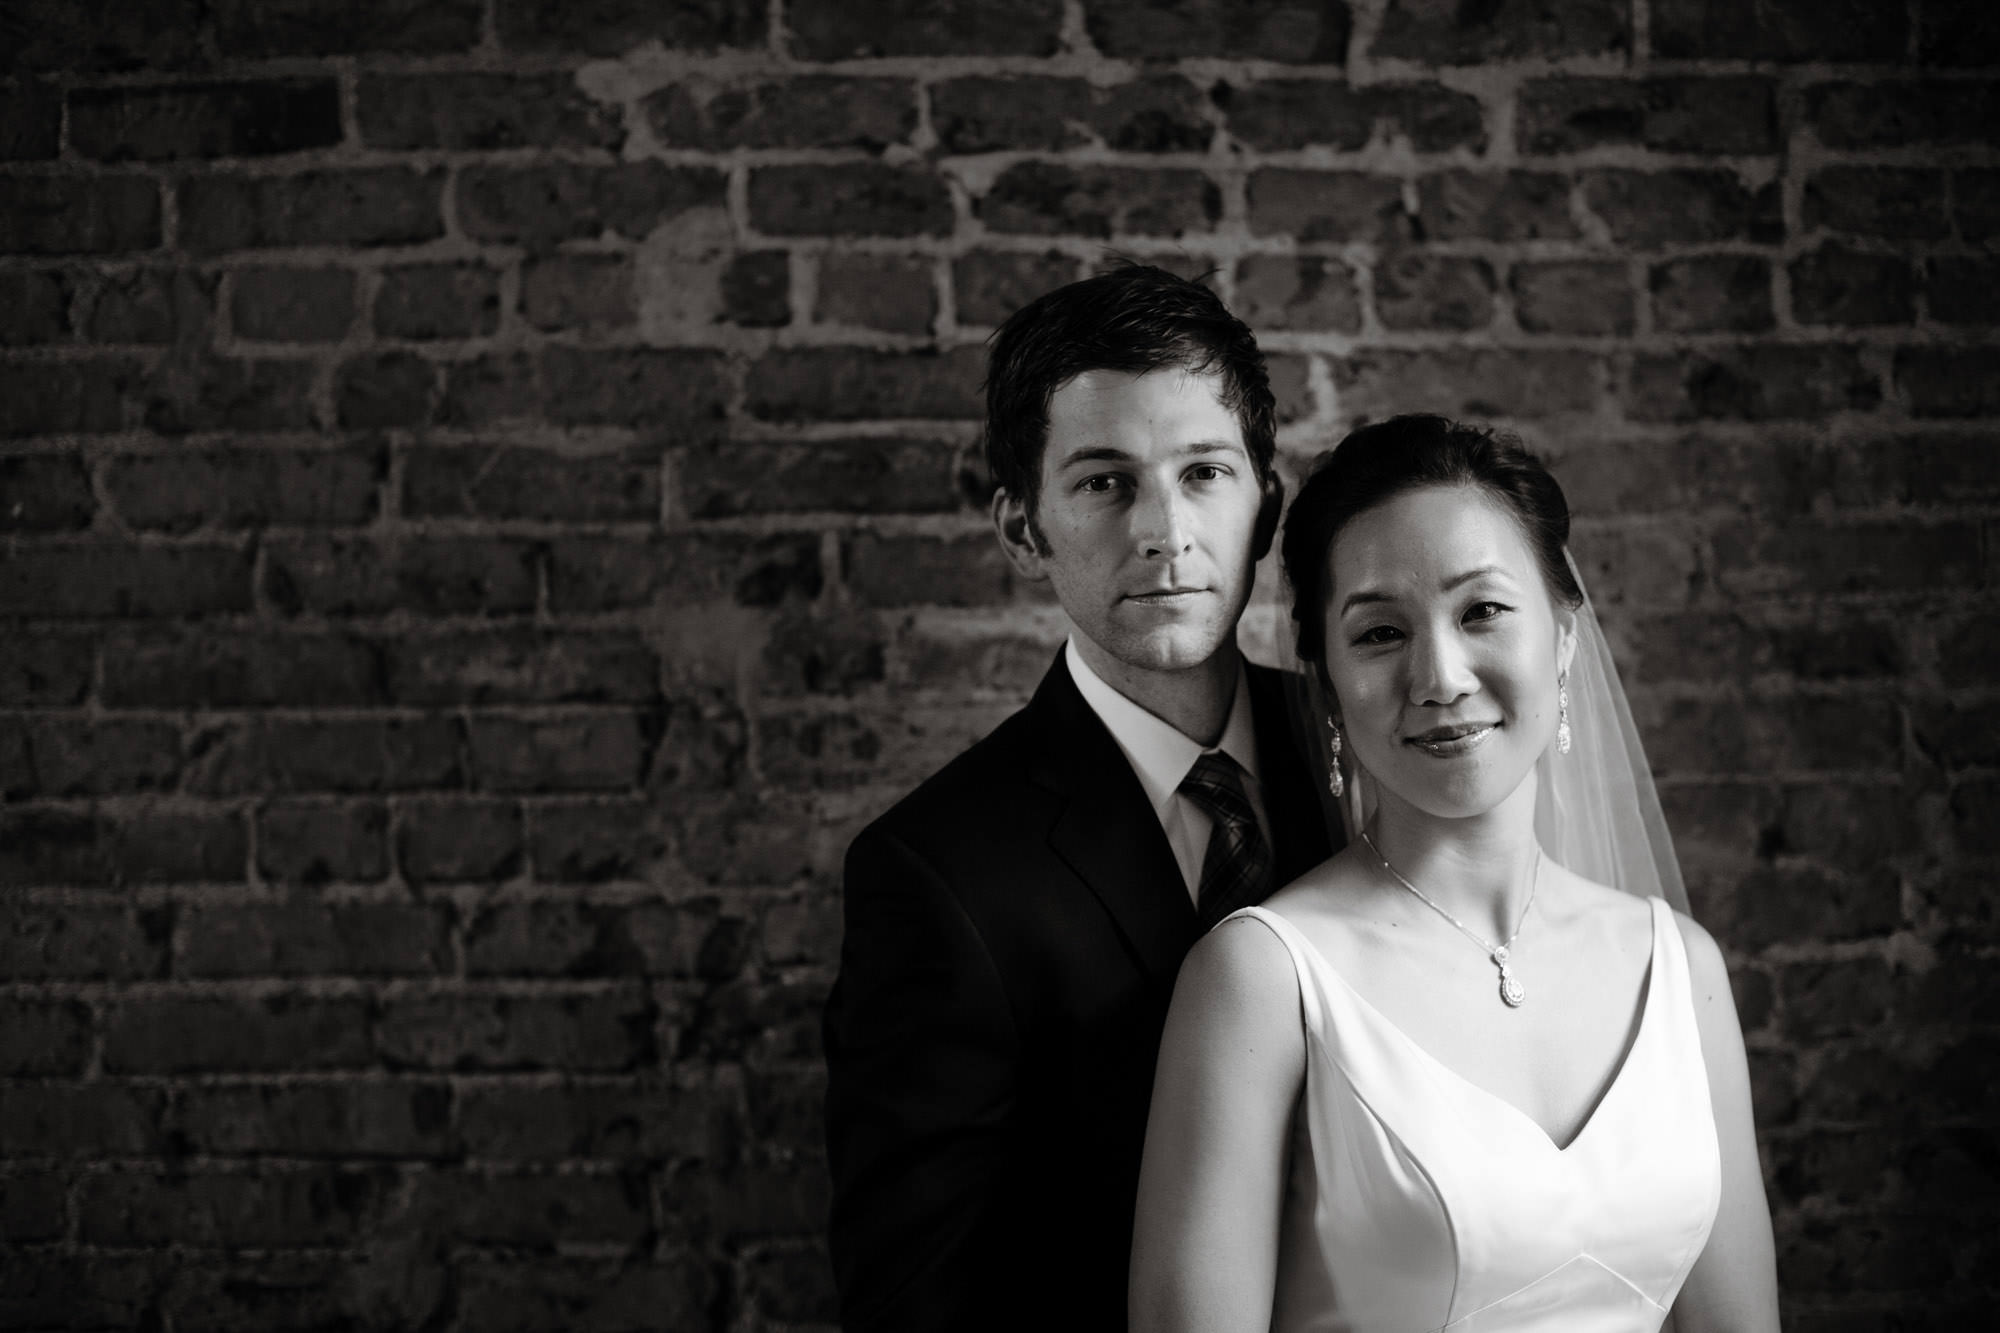 The bride and groom pose for a portrait on their wedding day at Epic Yoga Studio in Washington, DC.